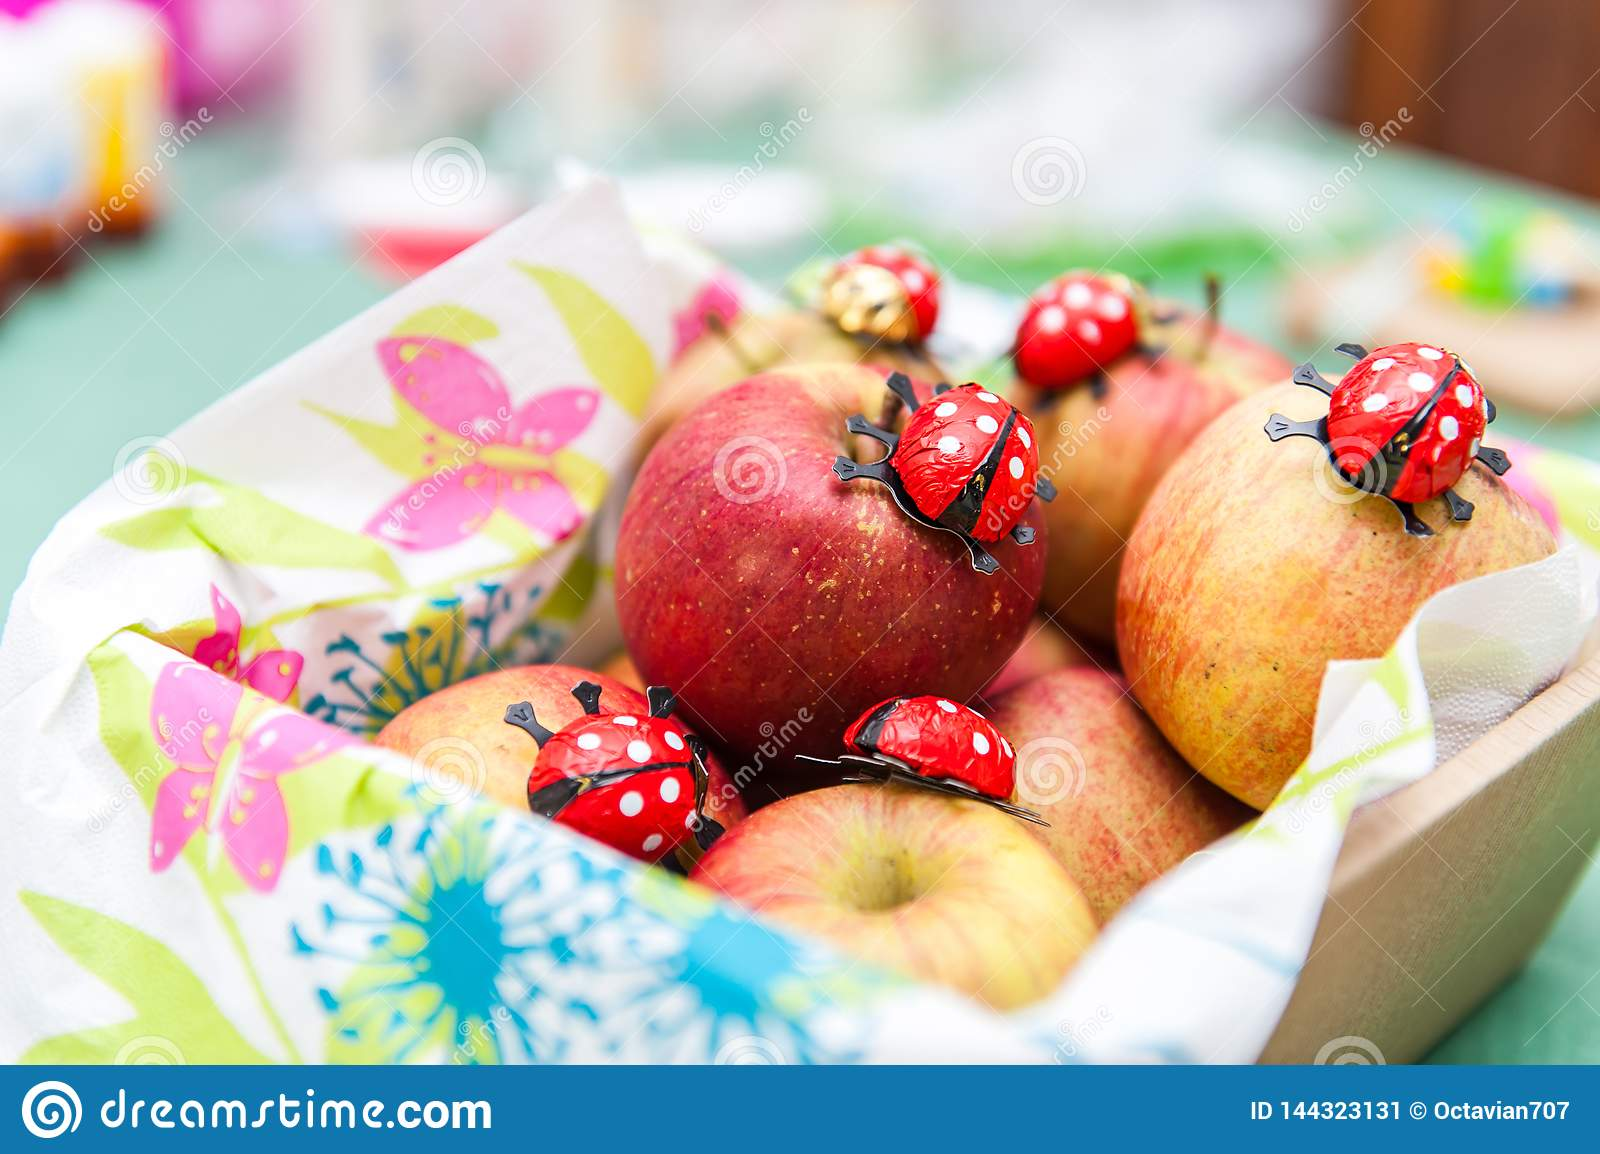 Fresh apples in basket with chocolate ladybugs